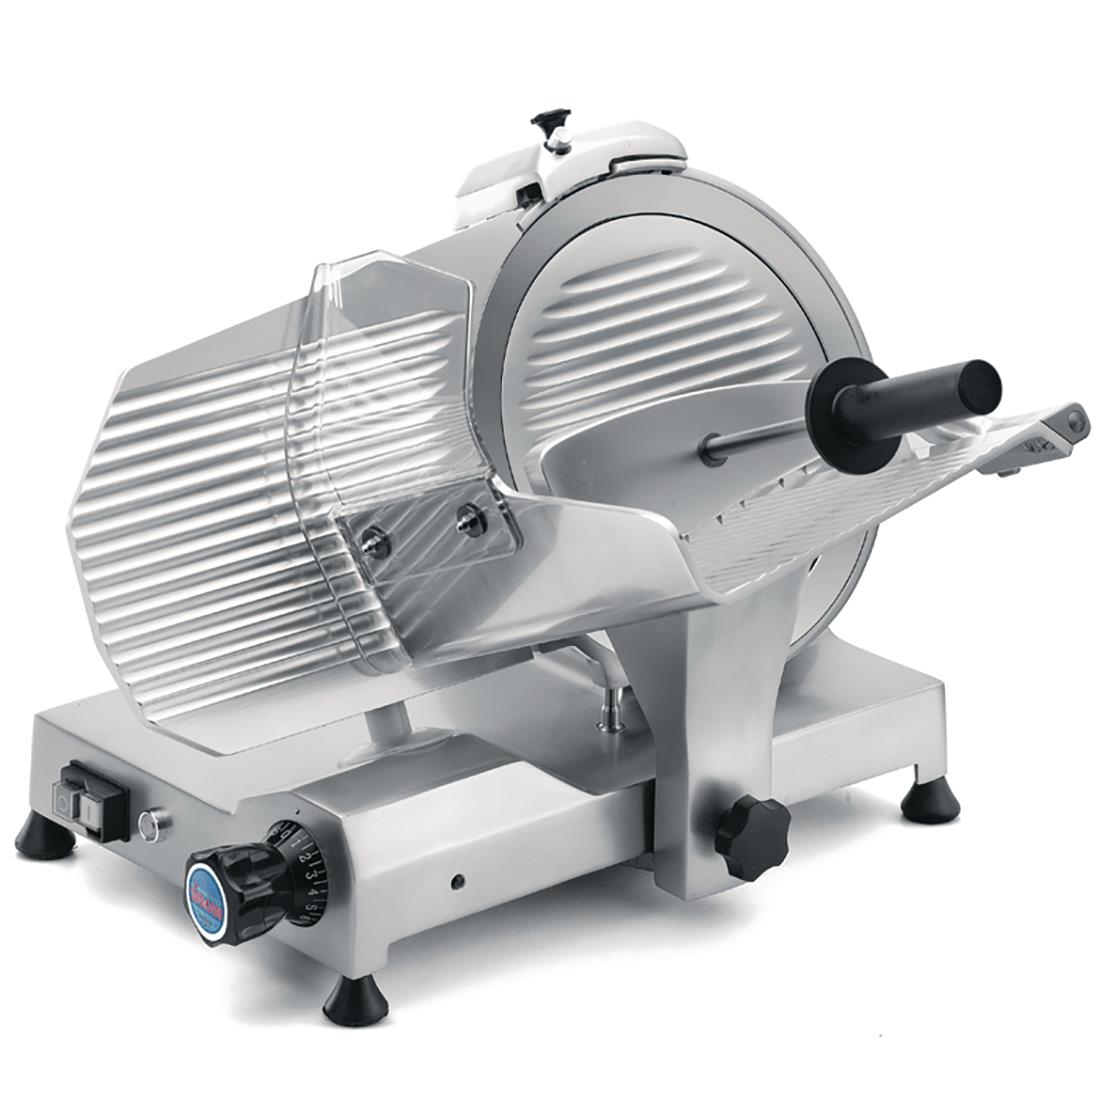 Sirman Meat Slicer Smart 300 - HC050 - Buy Online at Nisbets